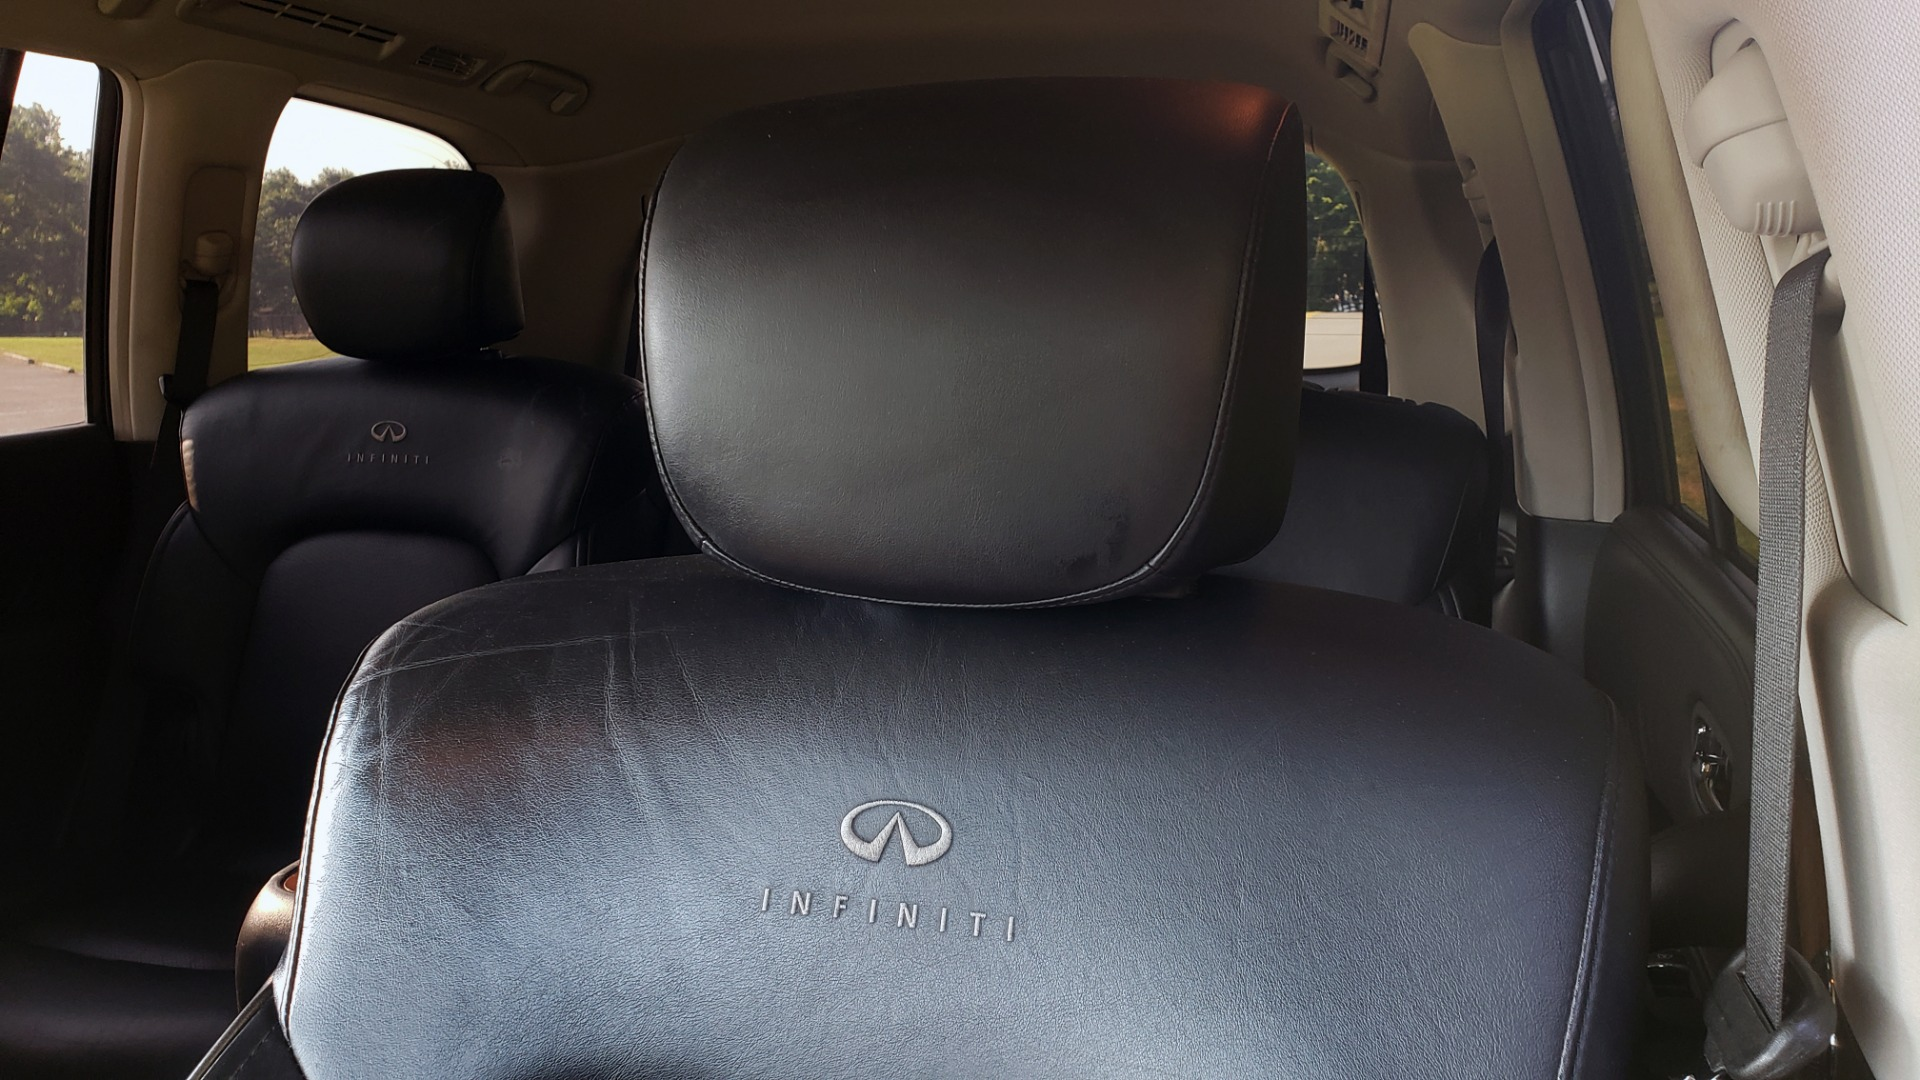 Used 2013 INFINITI QX56 NAV / SUNROOF / BOSE / THEATER / 3-ROW / REARVIEW for sale $21,495 at Formula Imports in Charlotte NC 28227 48